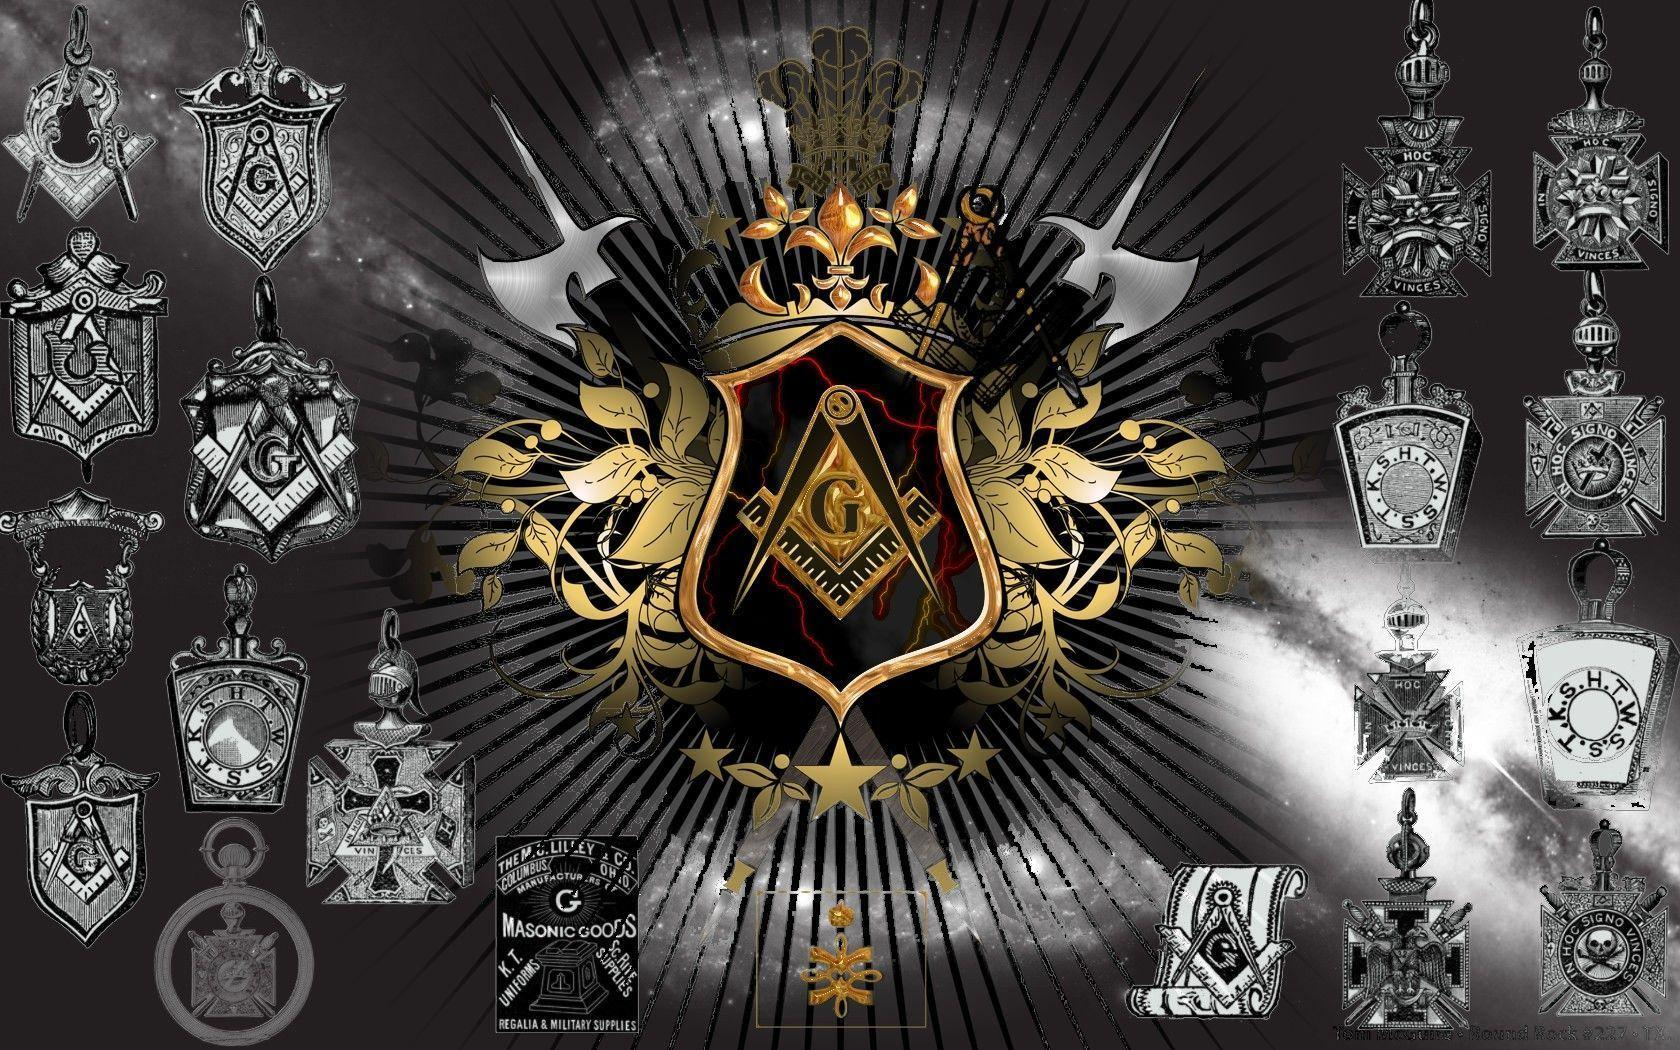 Freemason Wallpaper Backgrounds - www.